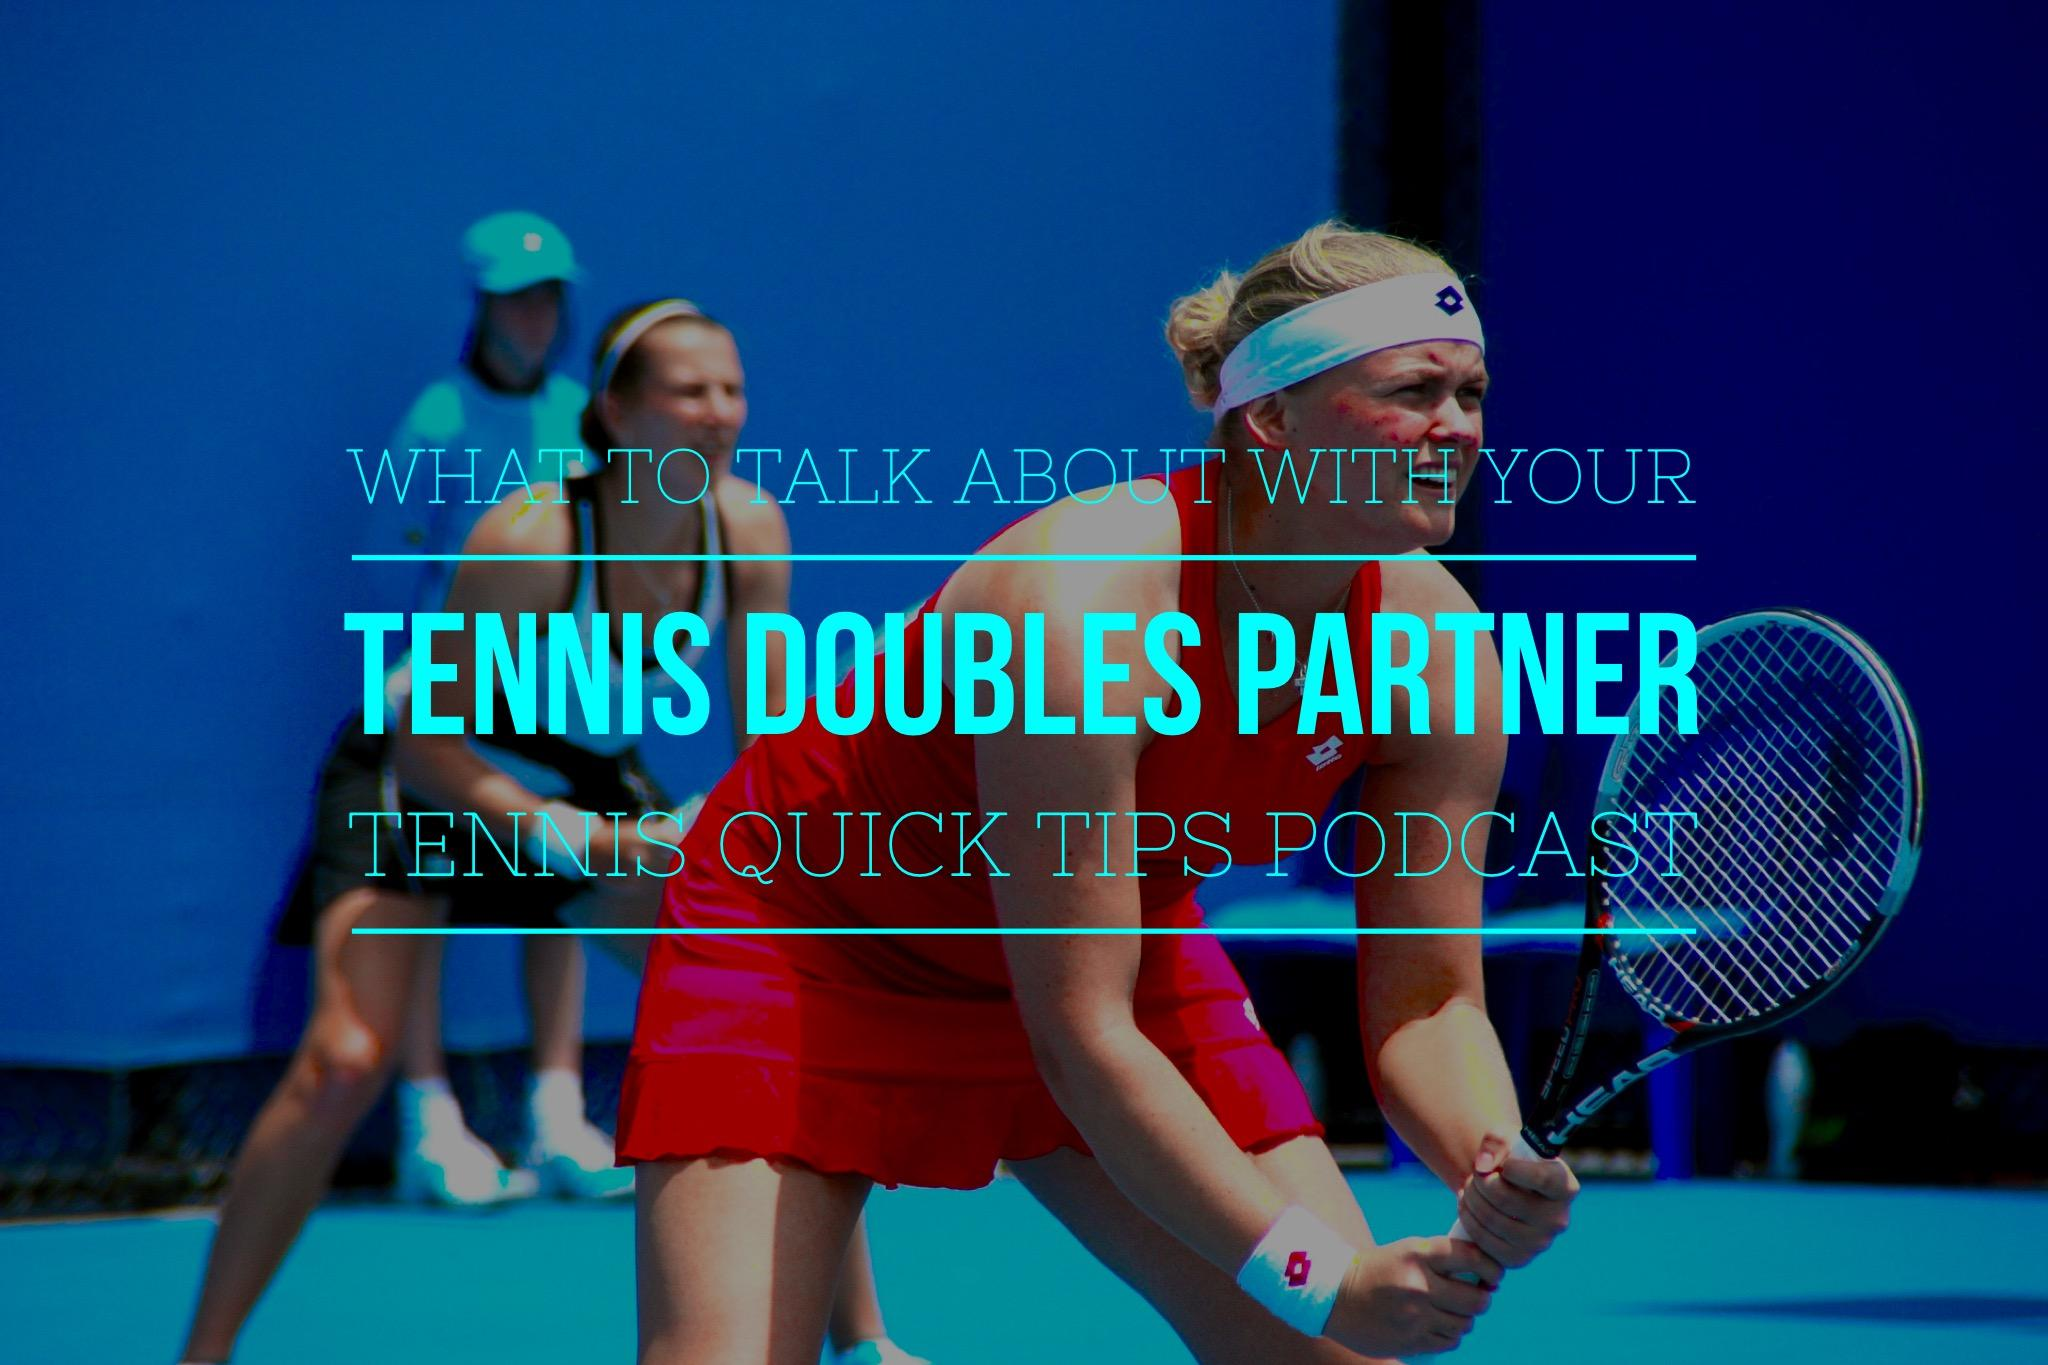 TFP 066: Jamie Loeb – Staying Mentally Tough on the WTA Tour